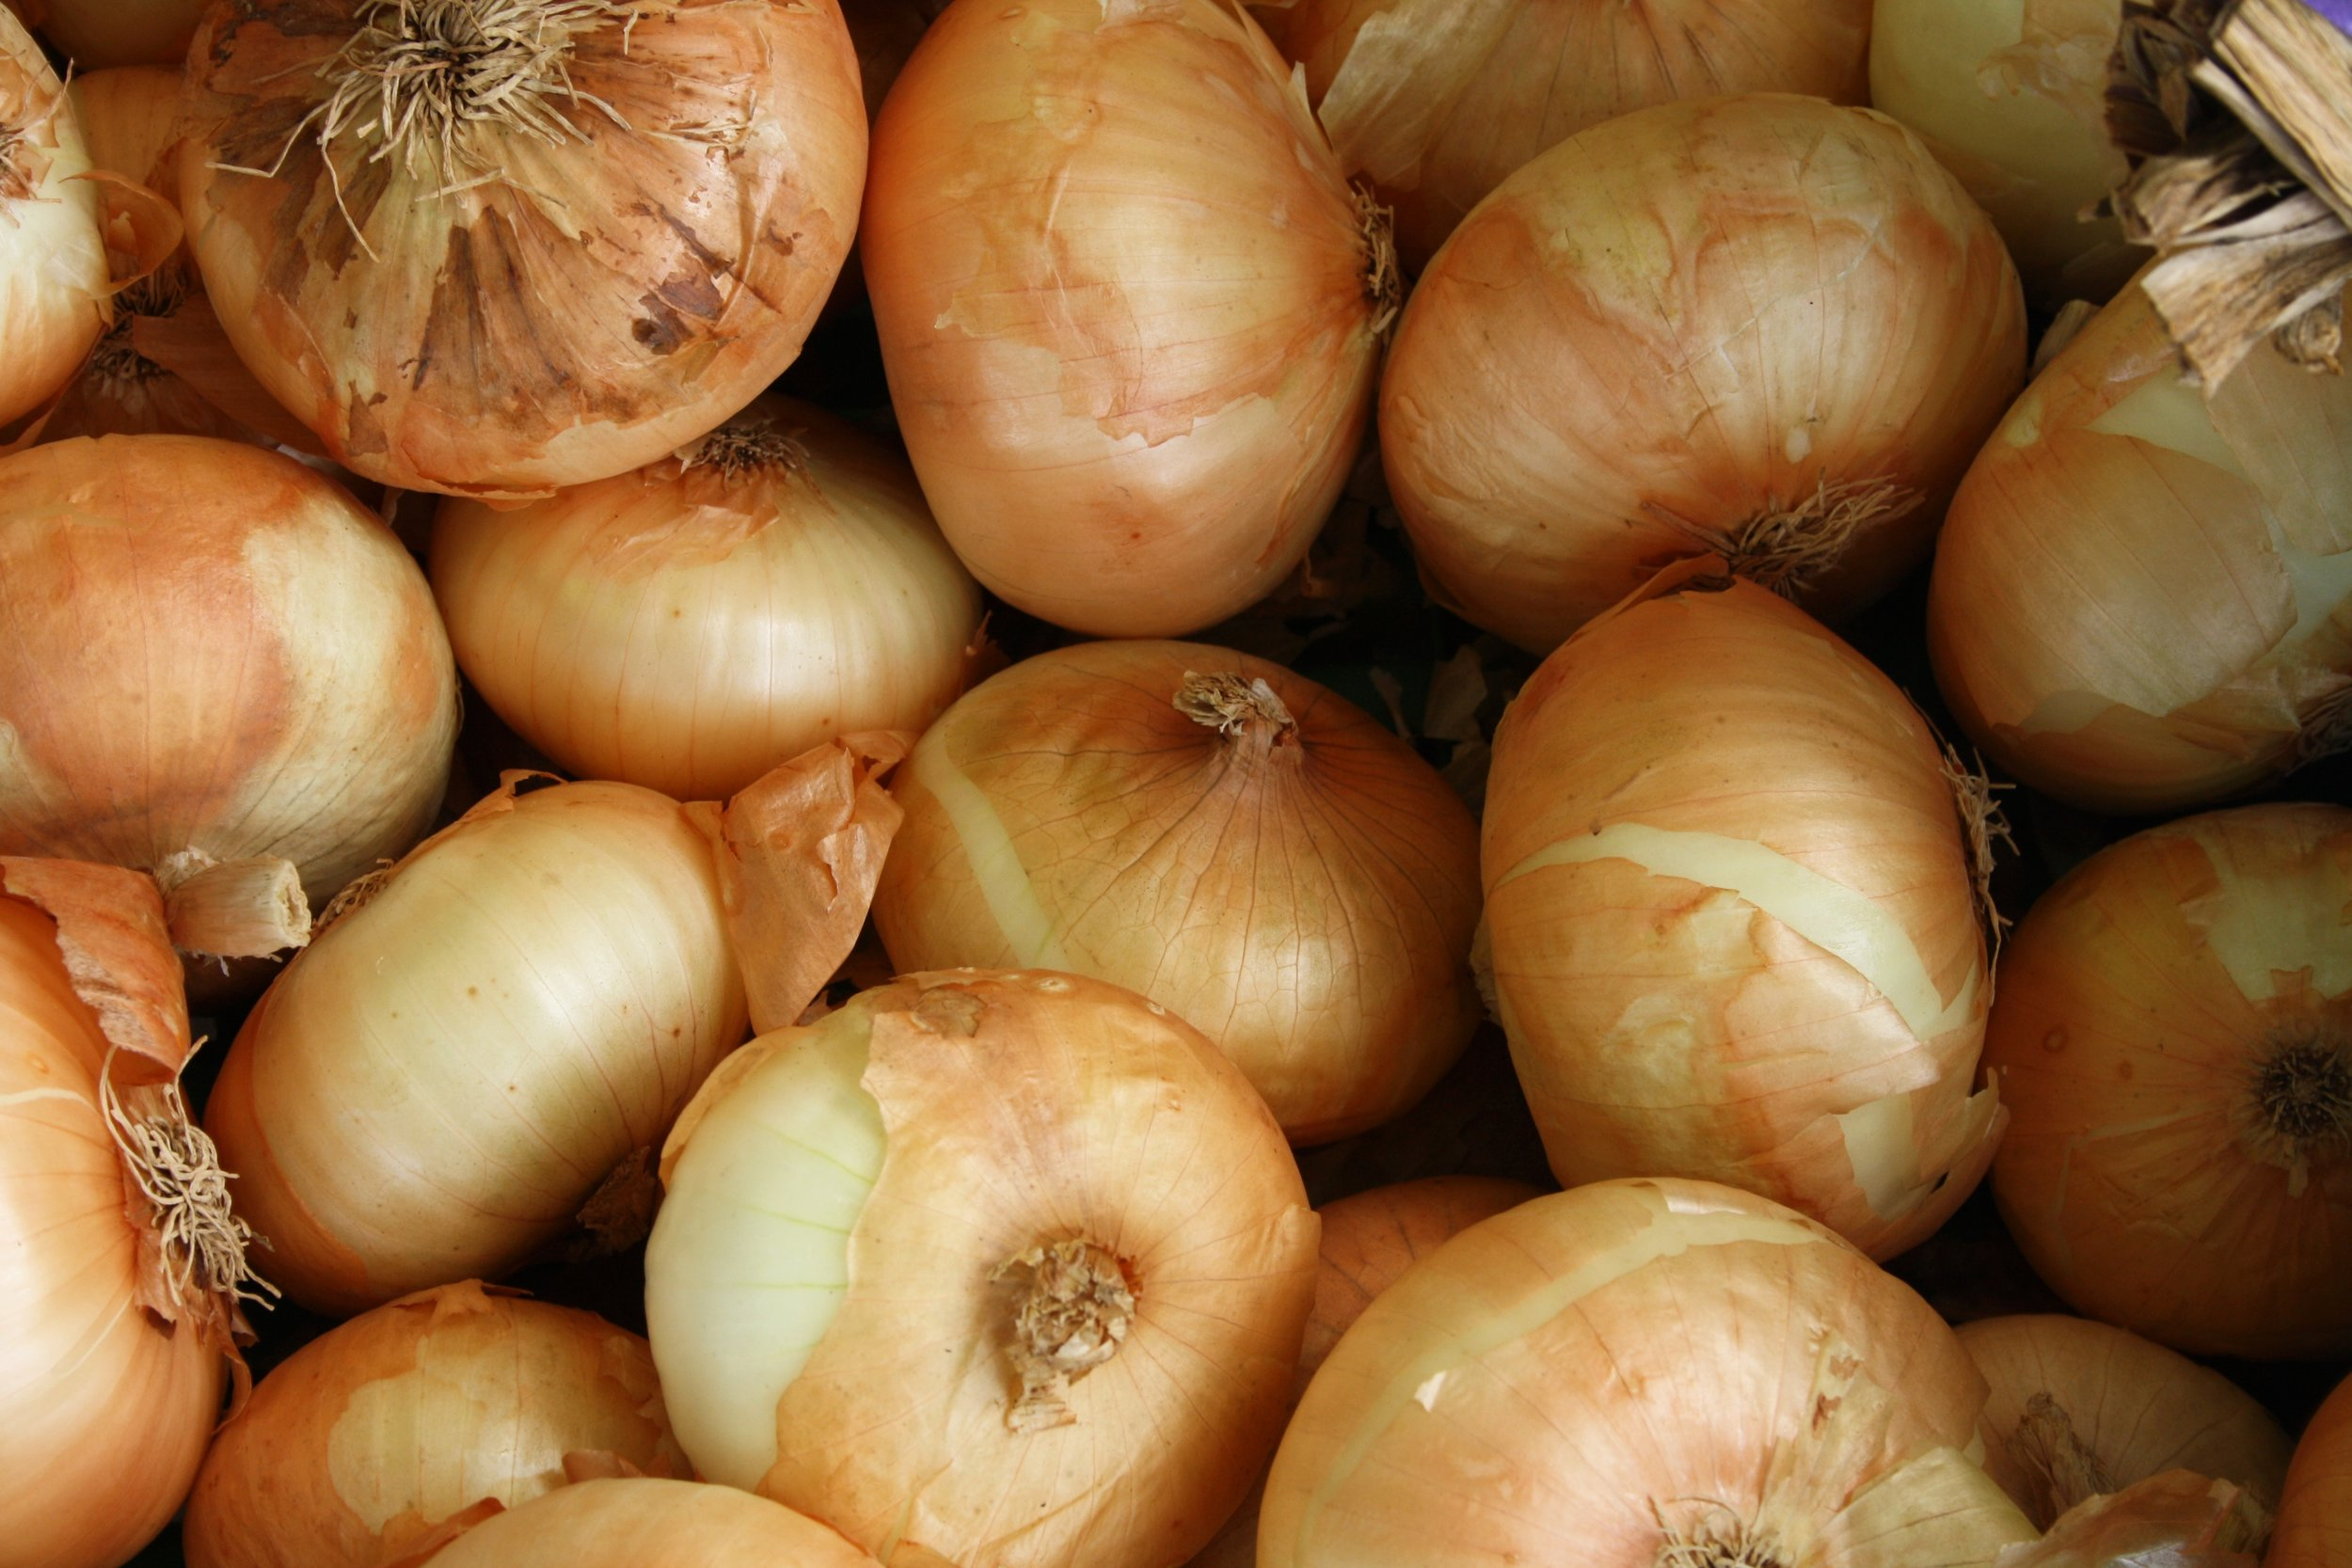 Your liver loves onions.